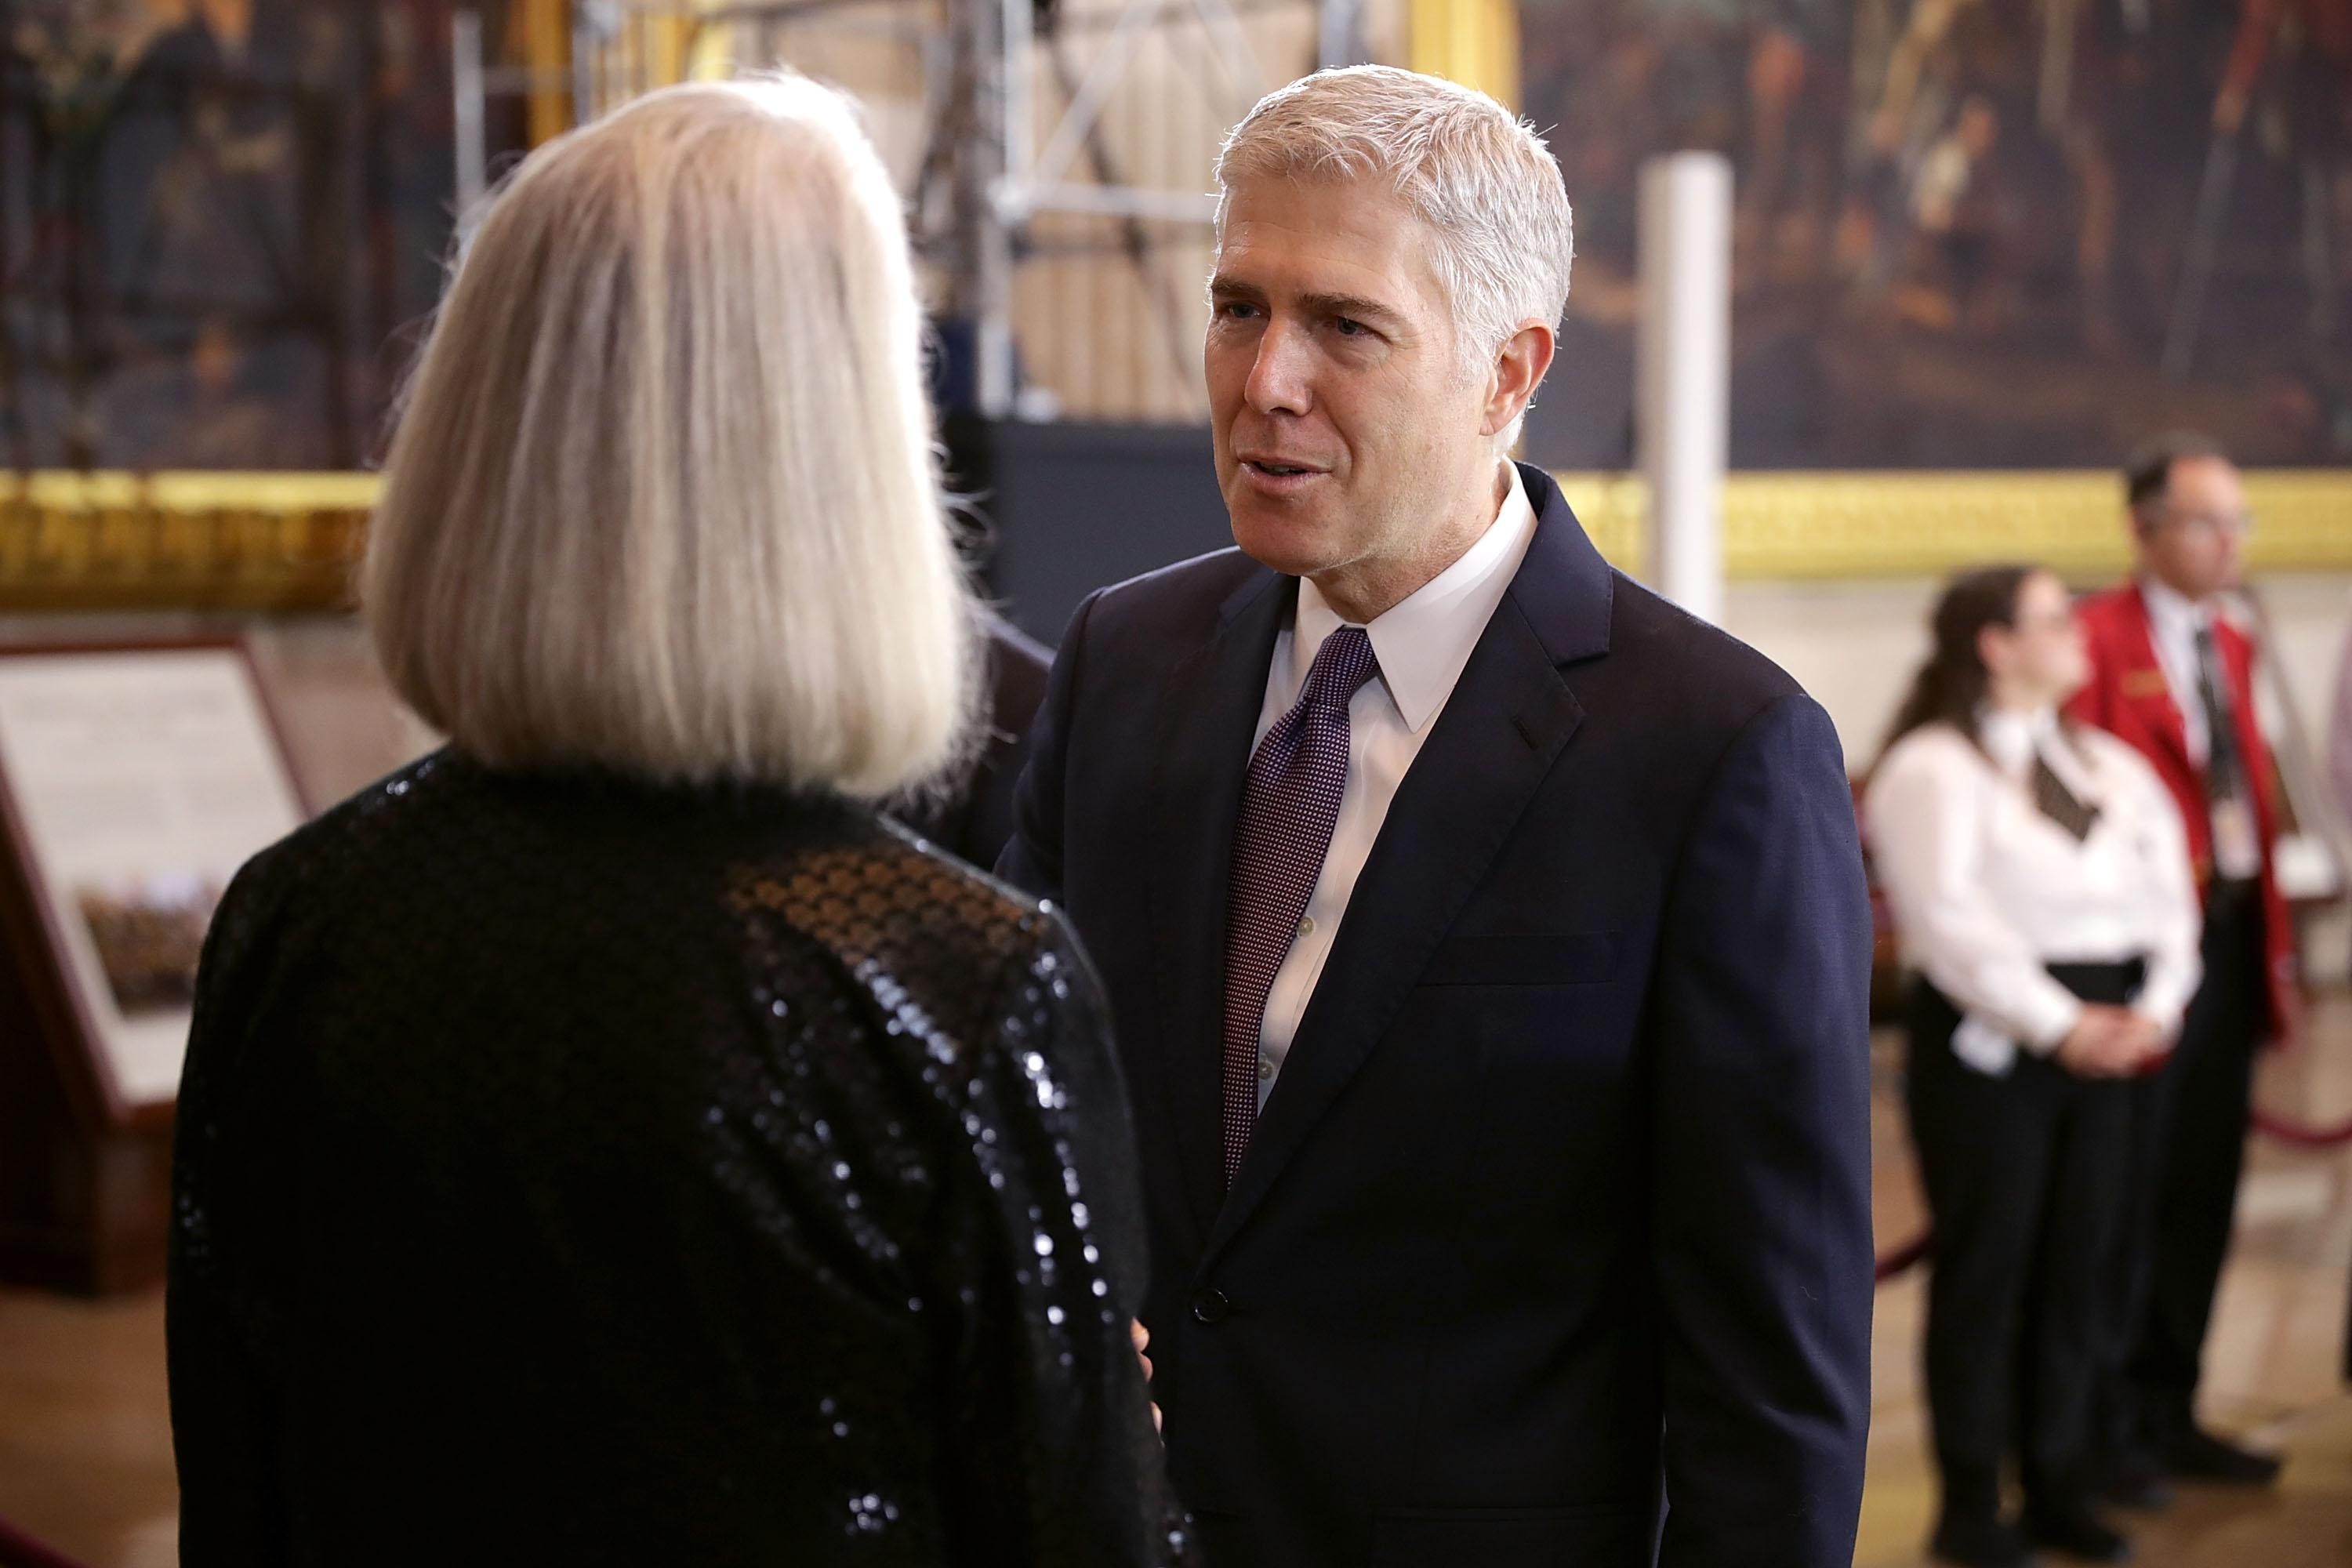 Neil Gorsuch talks with Anne Graham Lotz, daughter of Christian evangelist and Southern Baptist minister Billy Graham.